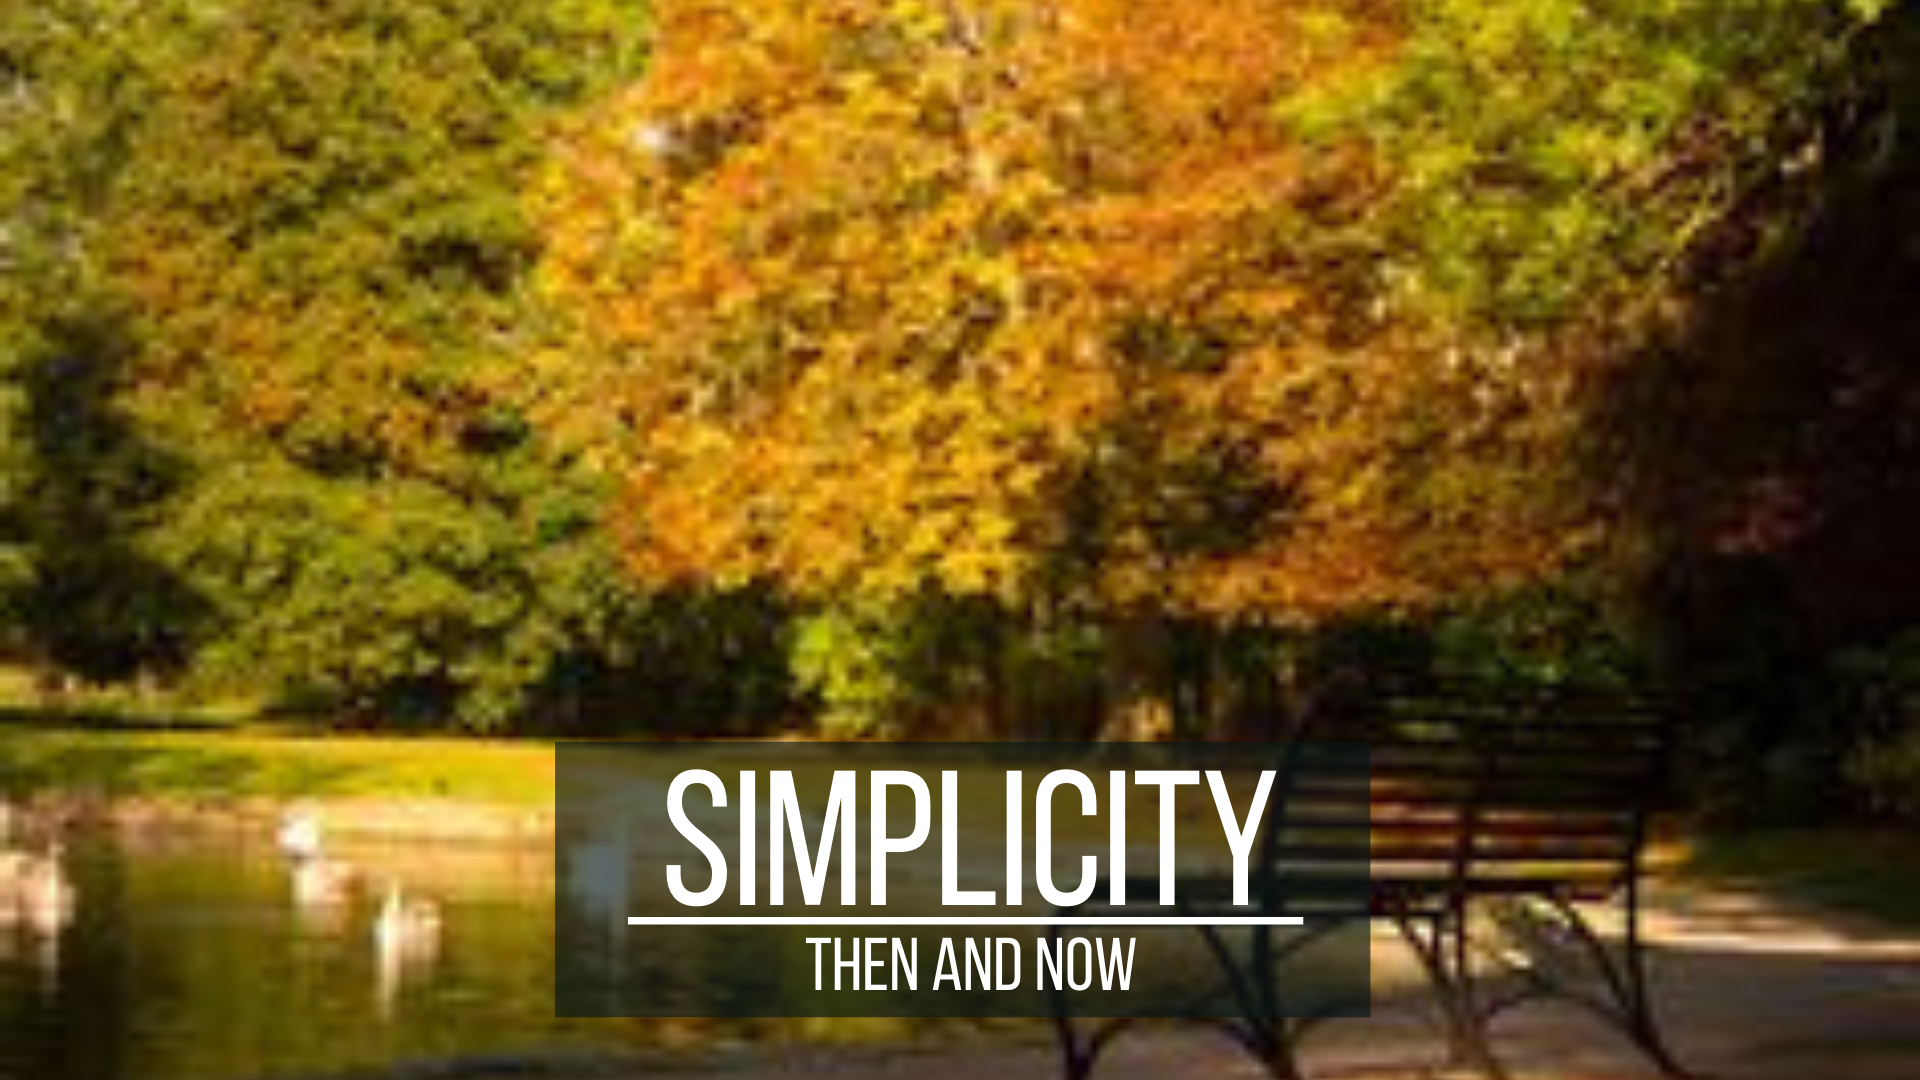 Simplicity: Then and Now